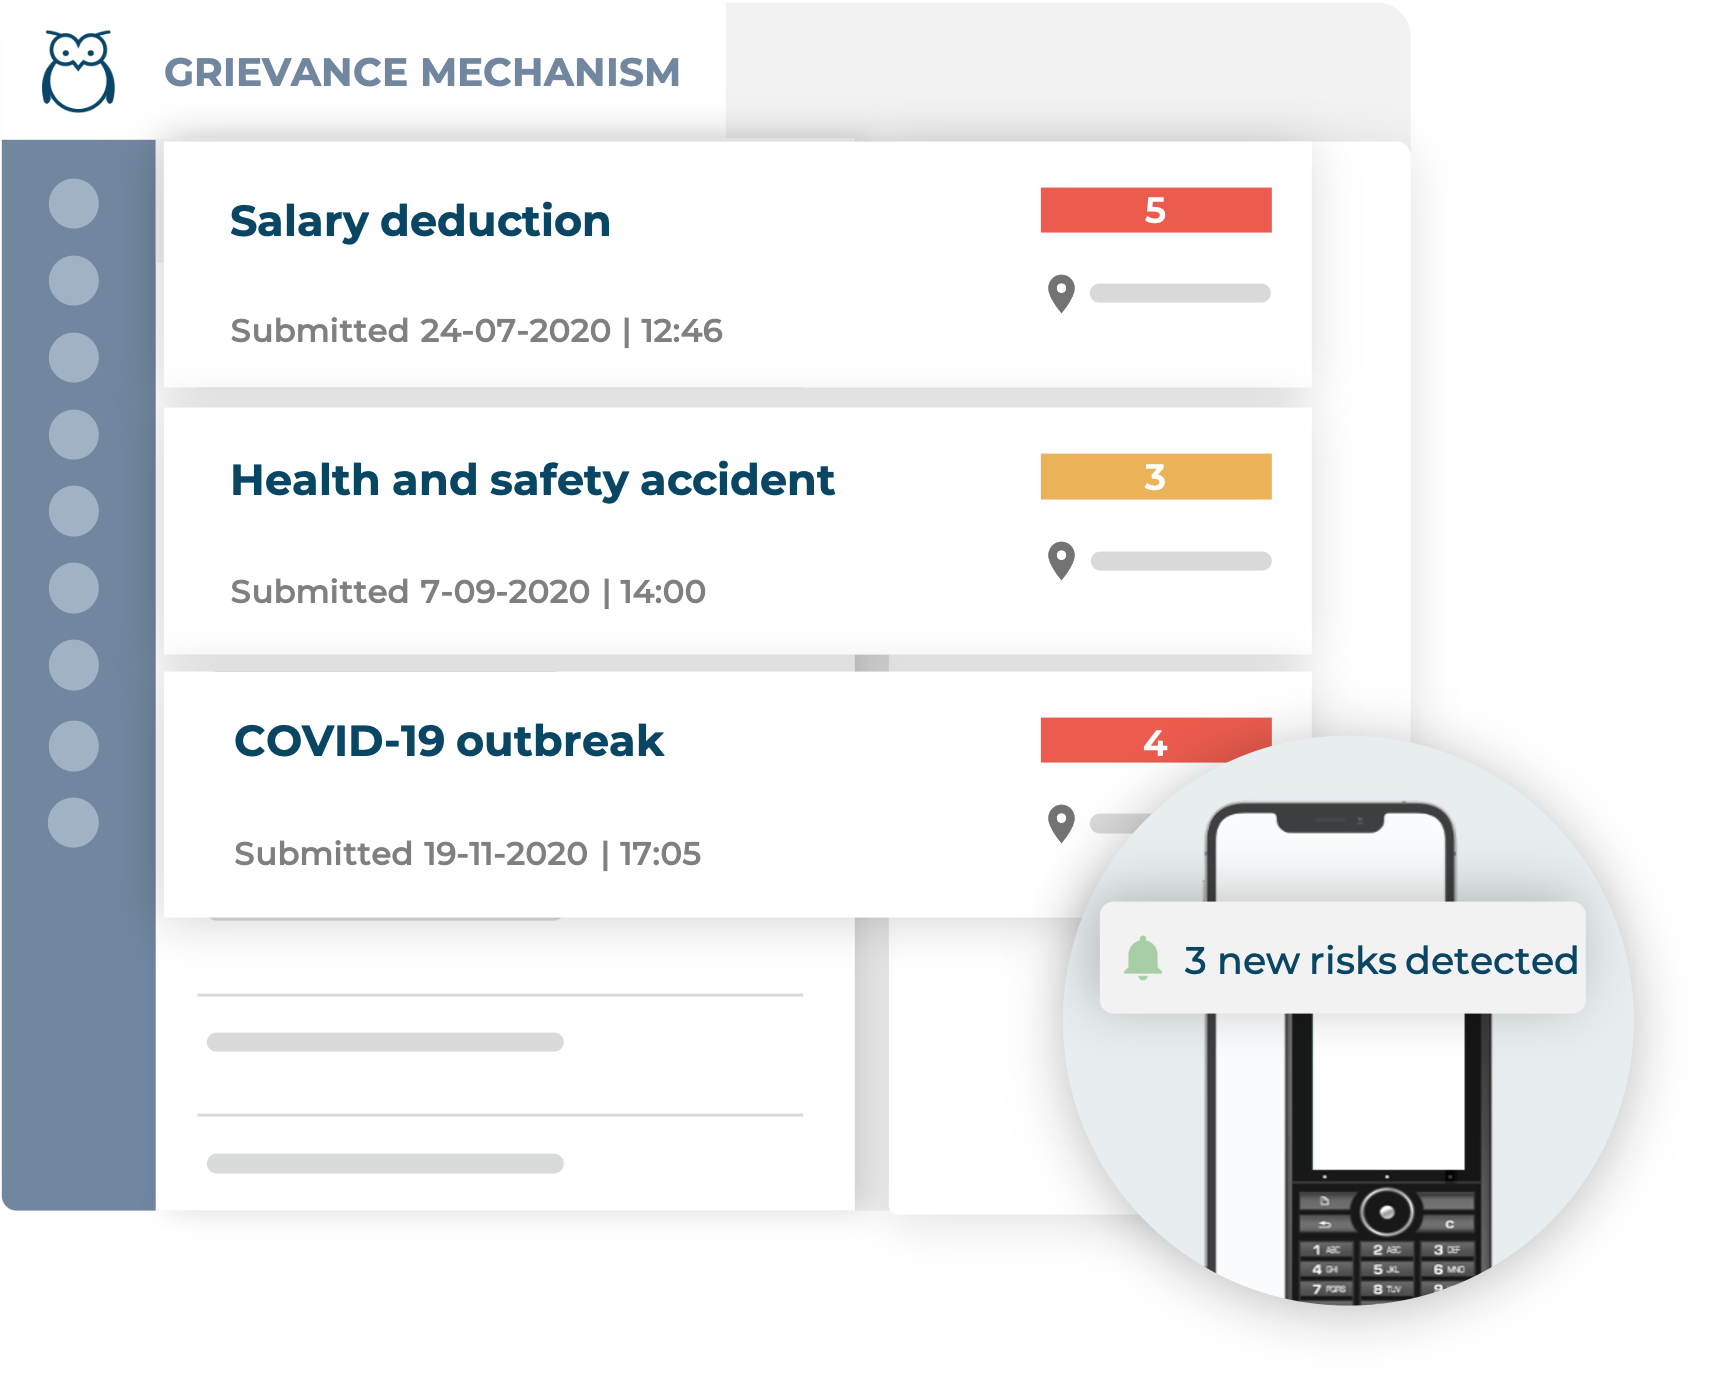 Ulula's grievance mechanism displaying a list of submitted grievances of varying risk levels and mobile phones showing a notification